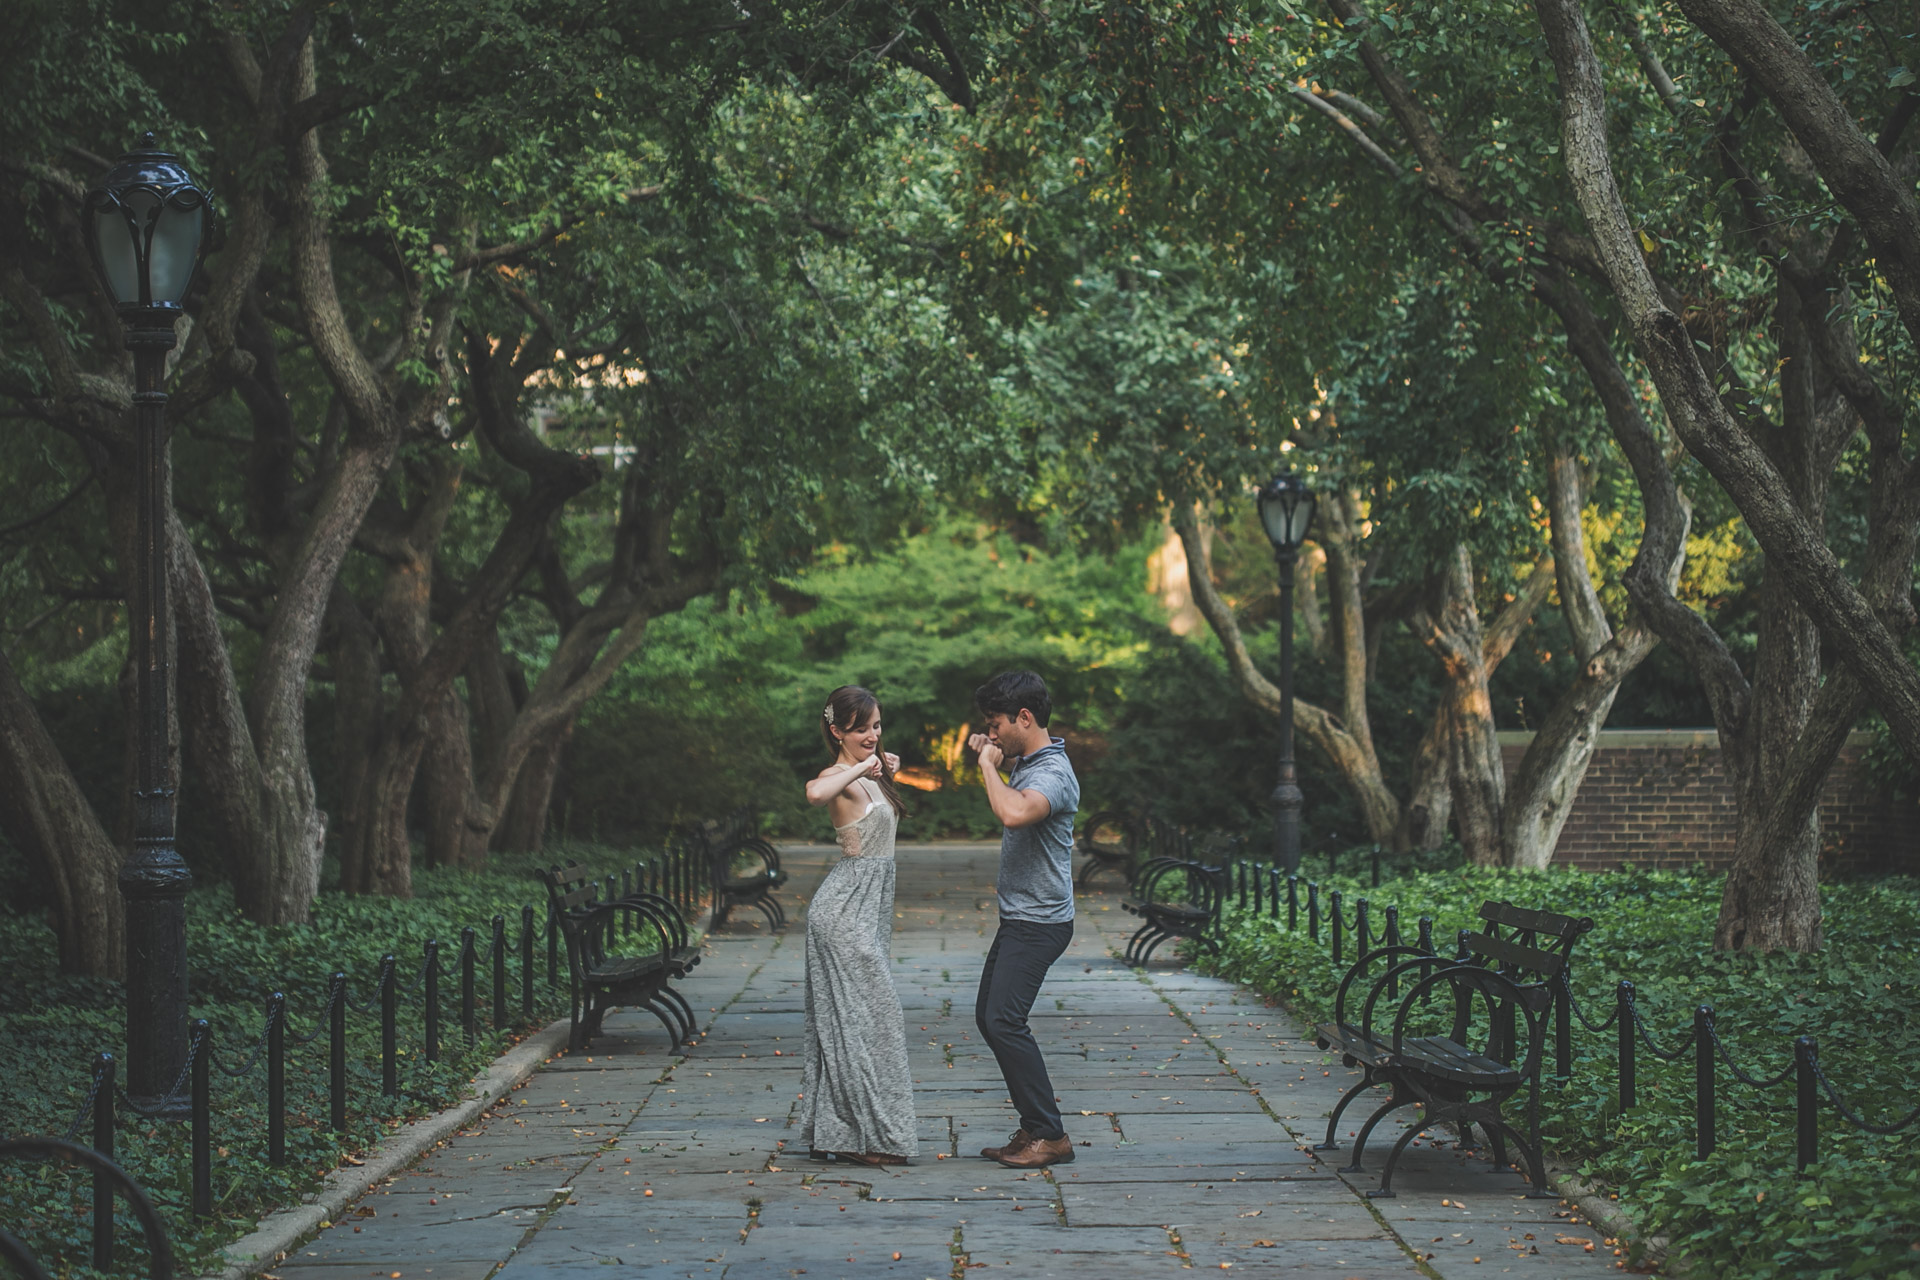 nyc - central park - engagement session - dancing